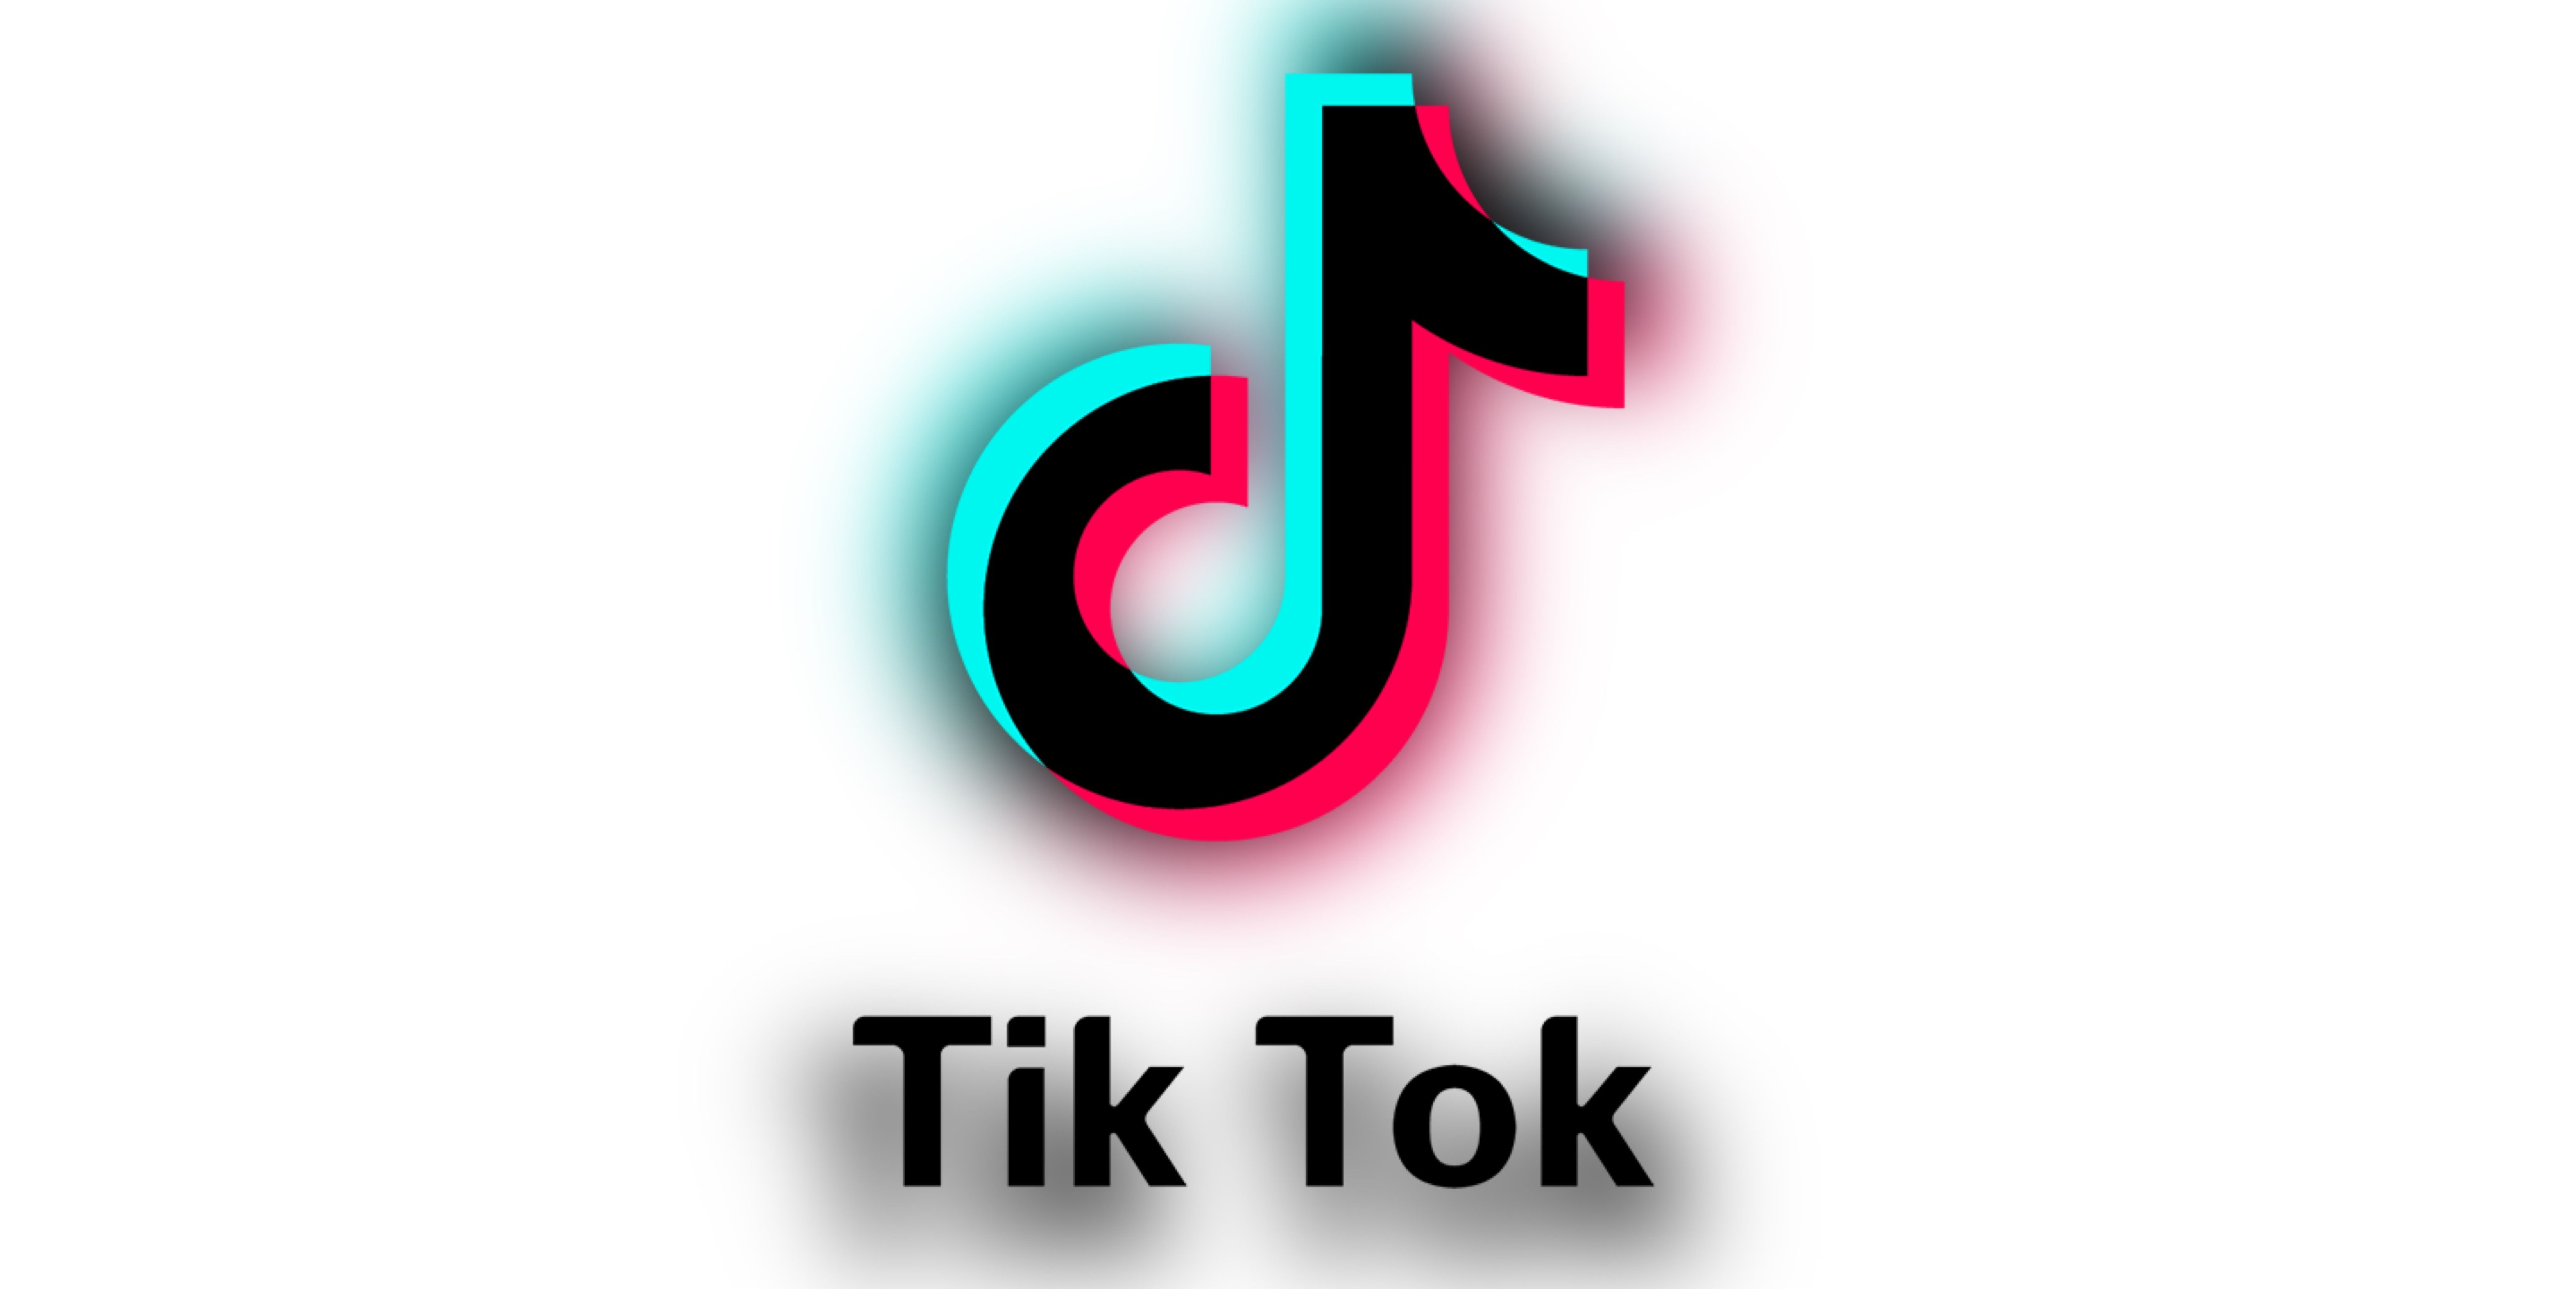 Best Of Spotify Tiktok Hits Songs And Latest Music Hits On Spotify Viral Song Music Hits Songs